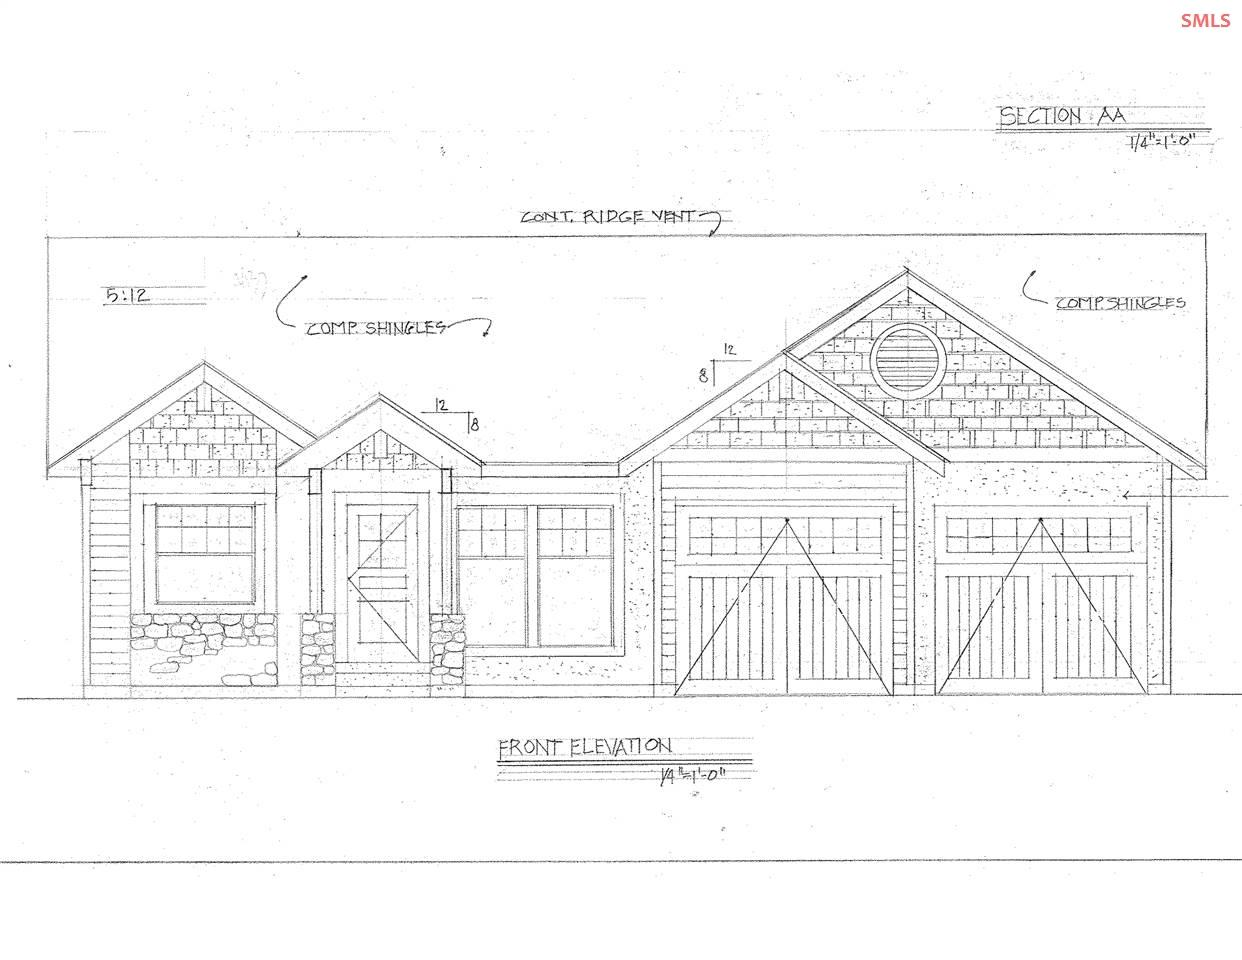 You will be delighted with this luxury 4-bedroom, 3-bath, new daylight home to be built for you at Cedars at Sandcreek.  Quality construction and northwest finishes include wood floors, custom  cabinets, granite or quartz counters, wood doors and trim.  All this in a prime location of upscale homes near Schweitzer Resort, trails, stores and services. No need to compromise, you've found it!  Photos are of similar home recently completed, with fireplace upgrade.  Please call for complete specifications.